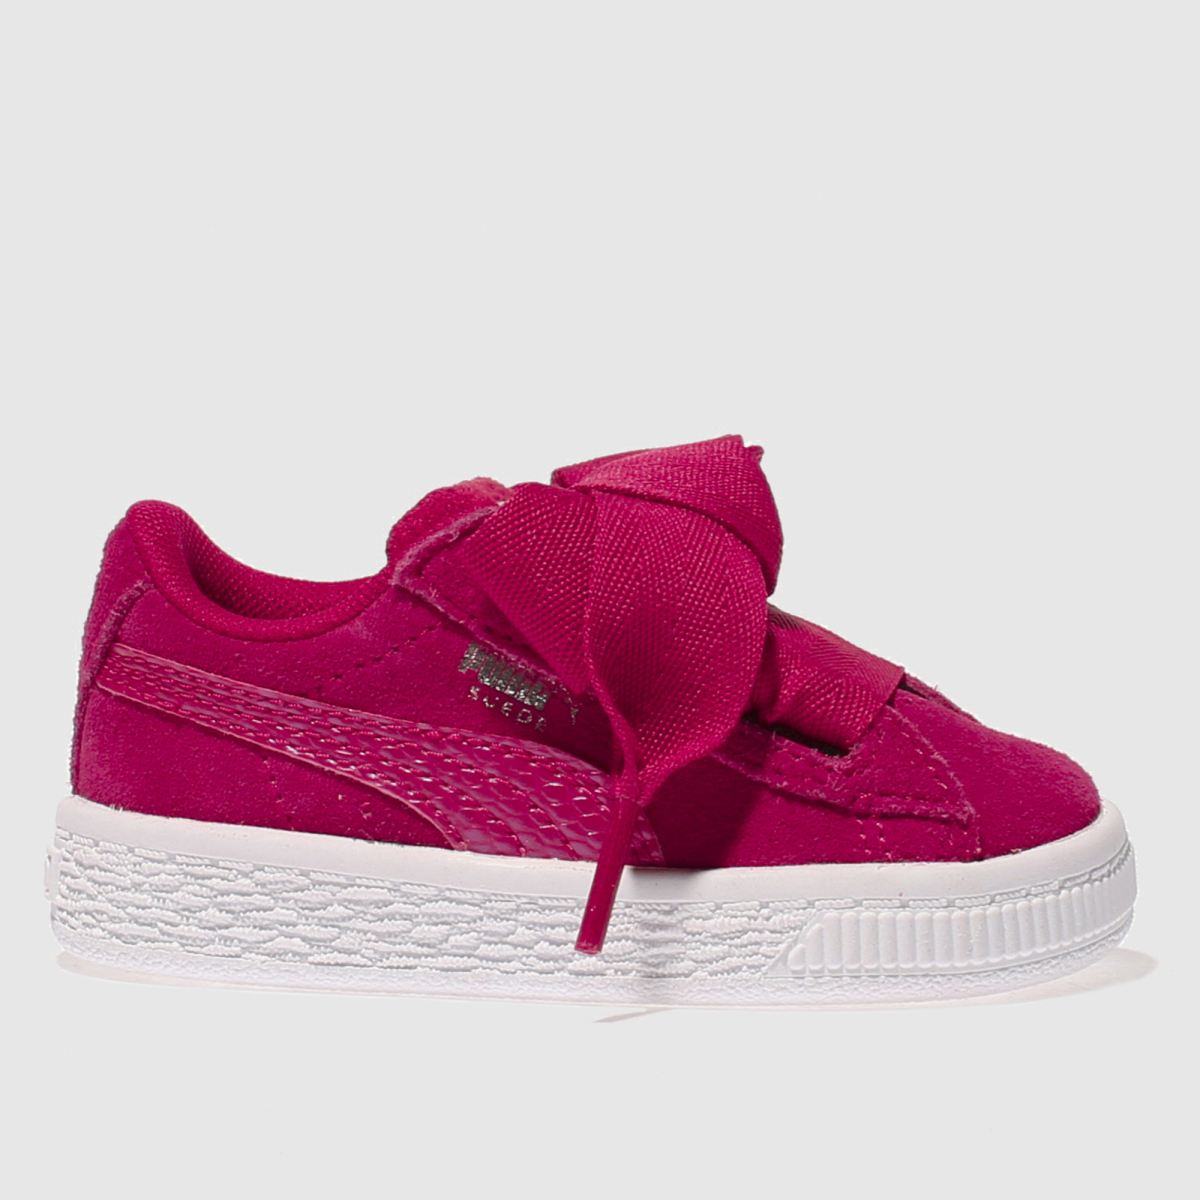 Puma Pink Basket Heart Snake Girls Toddler Toddler